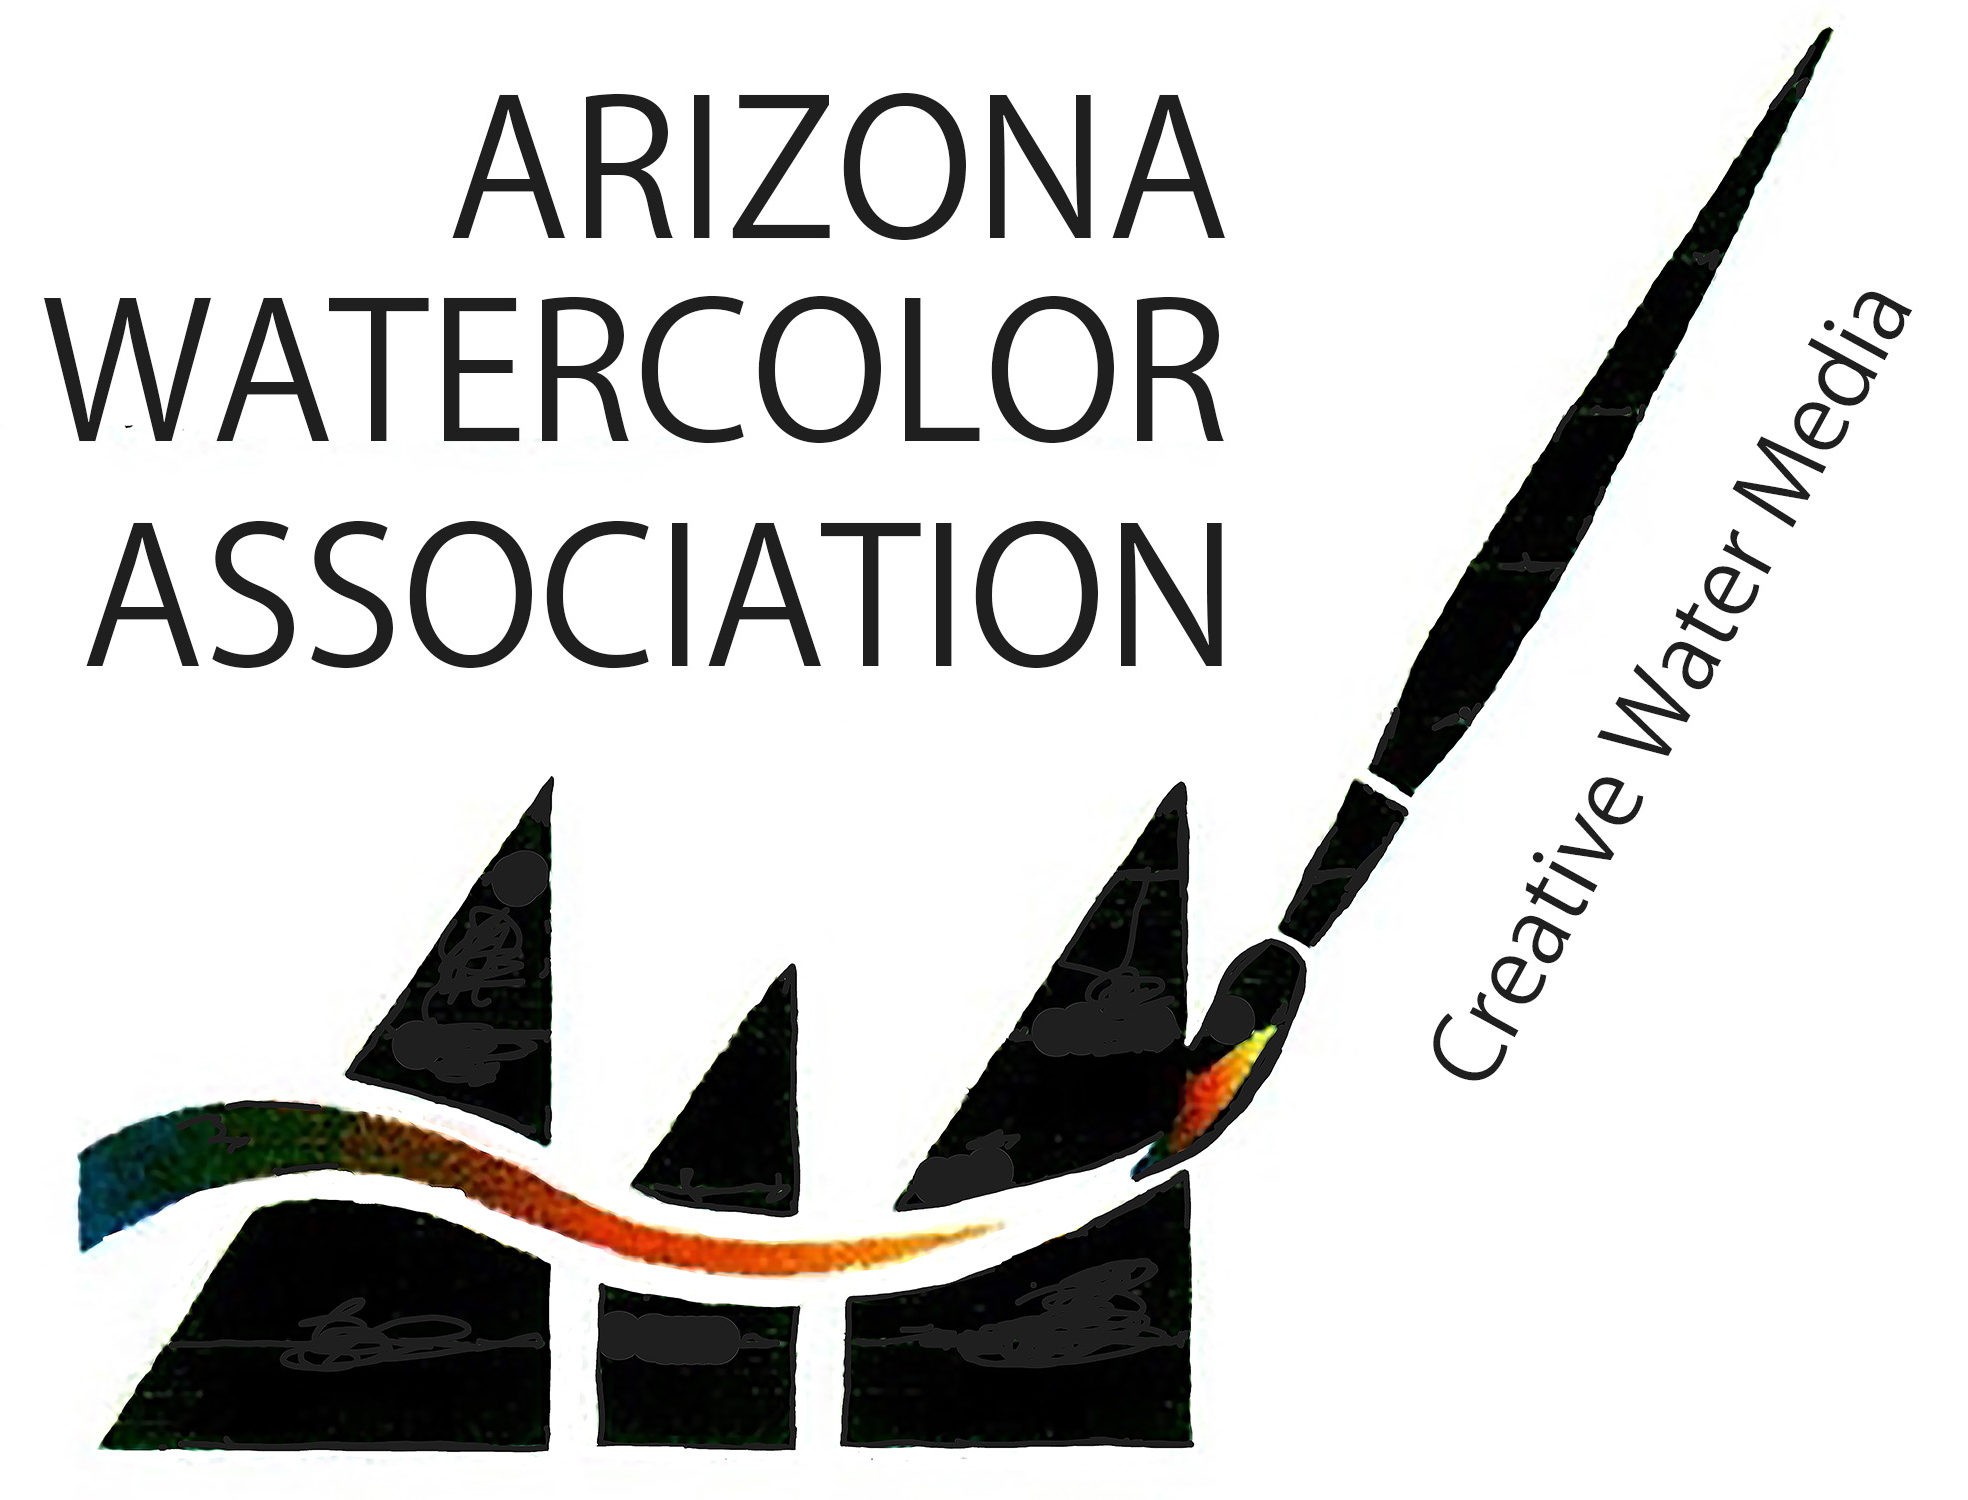 Arizona Watercolor Association Inc.